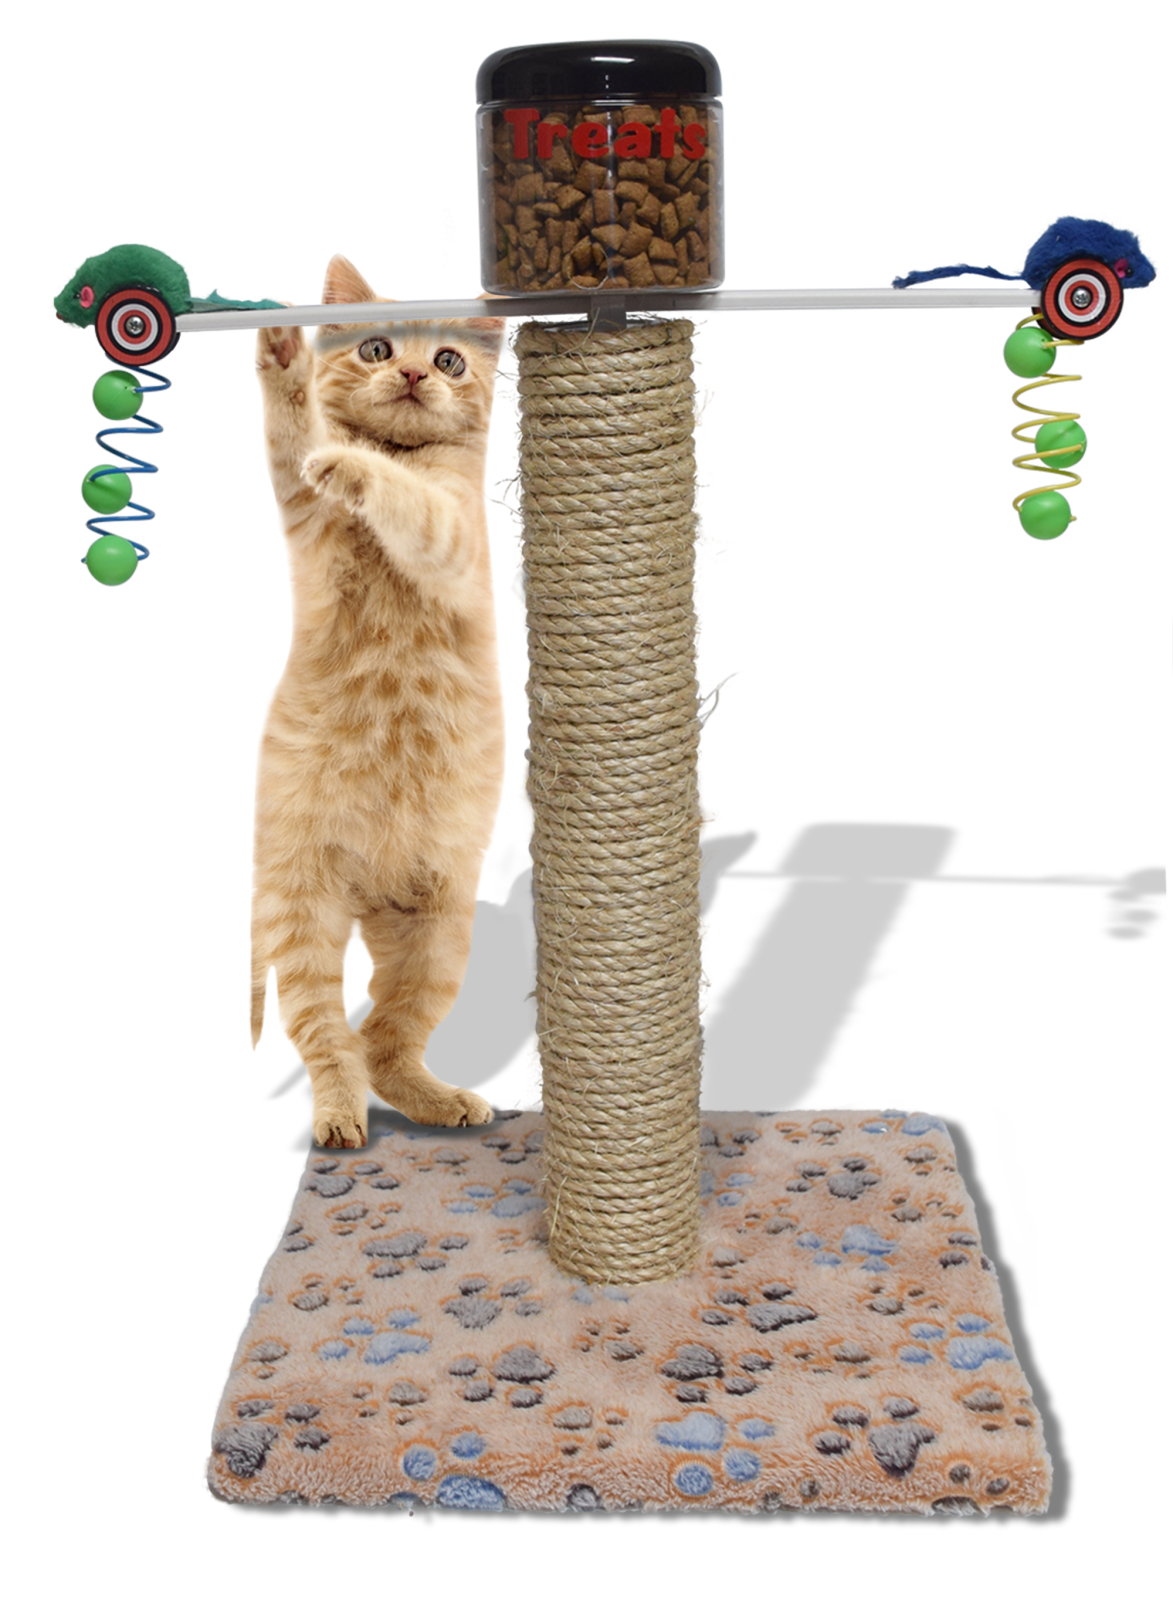 Table playground condo tower. Furhaven tiger tough cat tree house furniture for cats and kittens png clip free stock